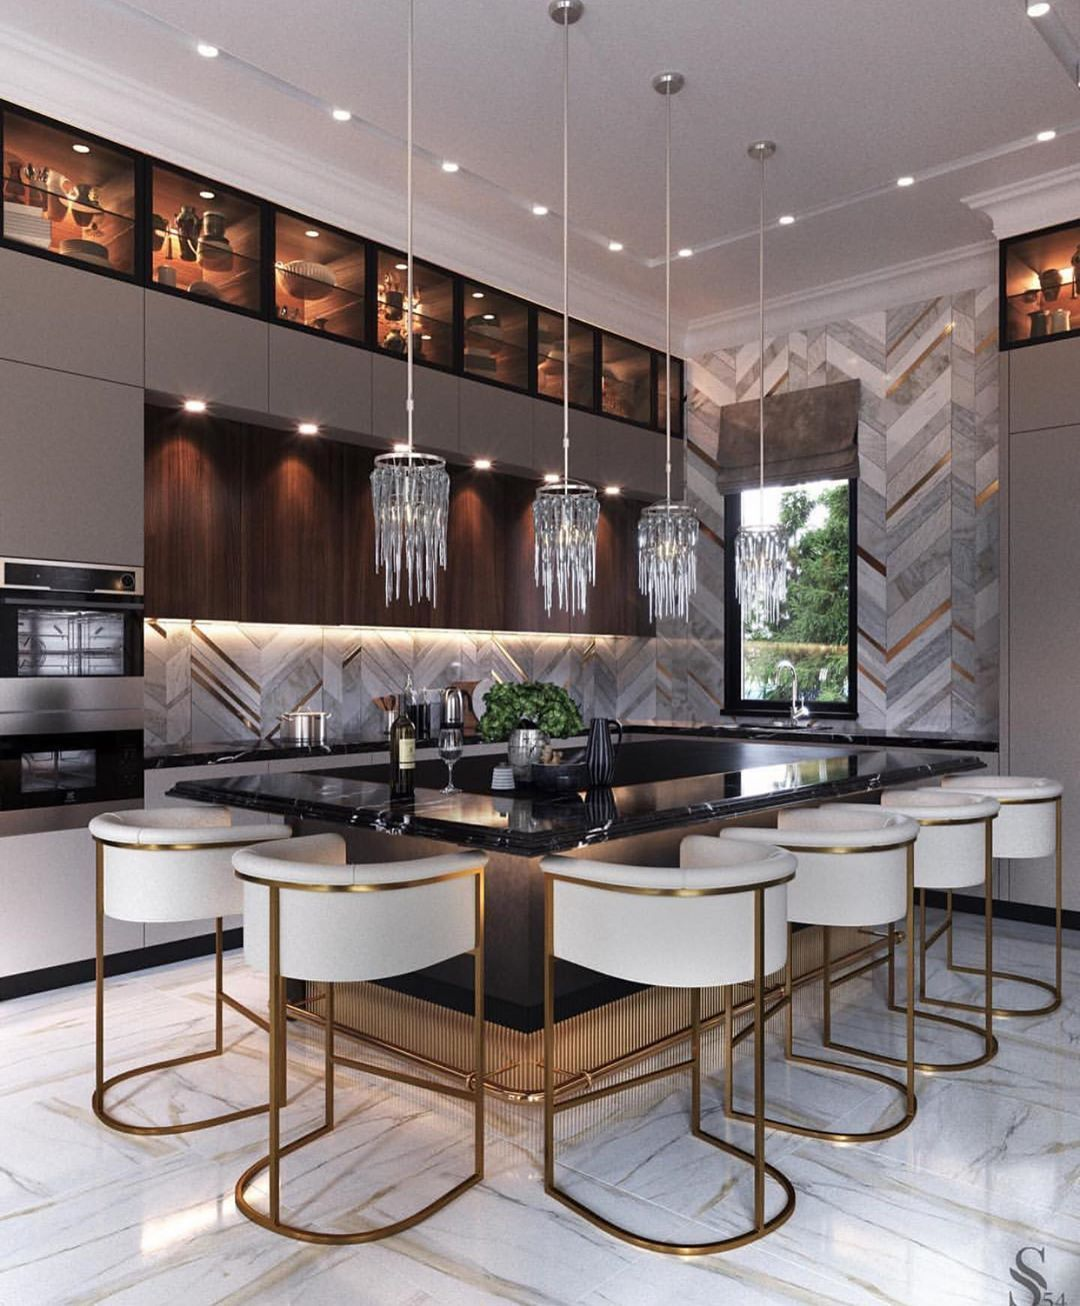 Glam Home Interior Design On Instagram I Ve Been Obsessed With Kitchens Lately Love All The Details Modern Kitchen Design Home Decor Kitchen Kitchen Design